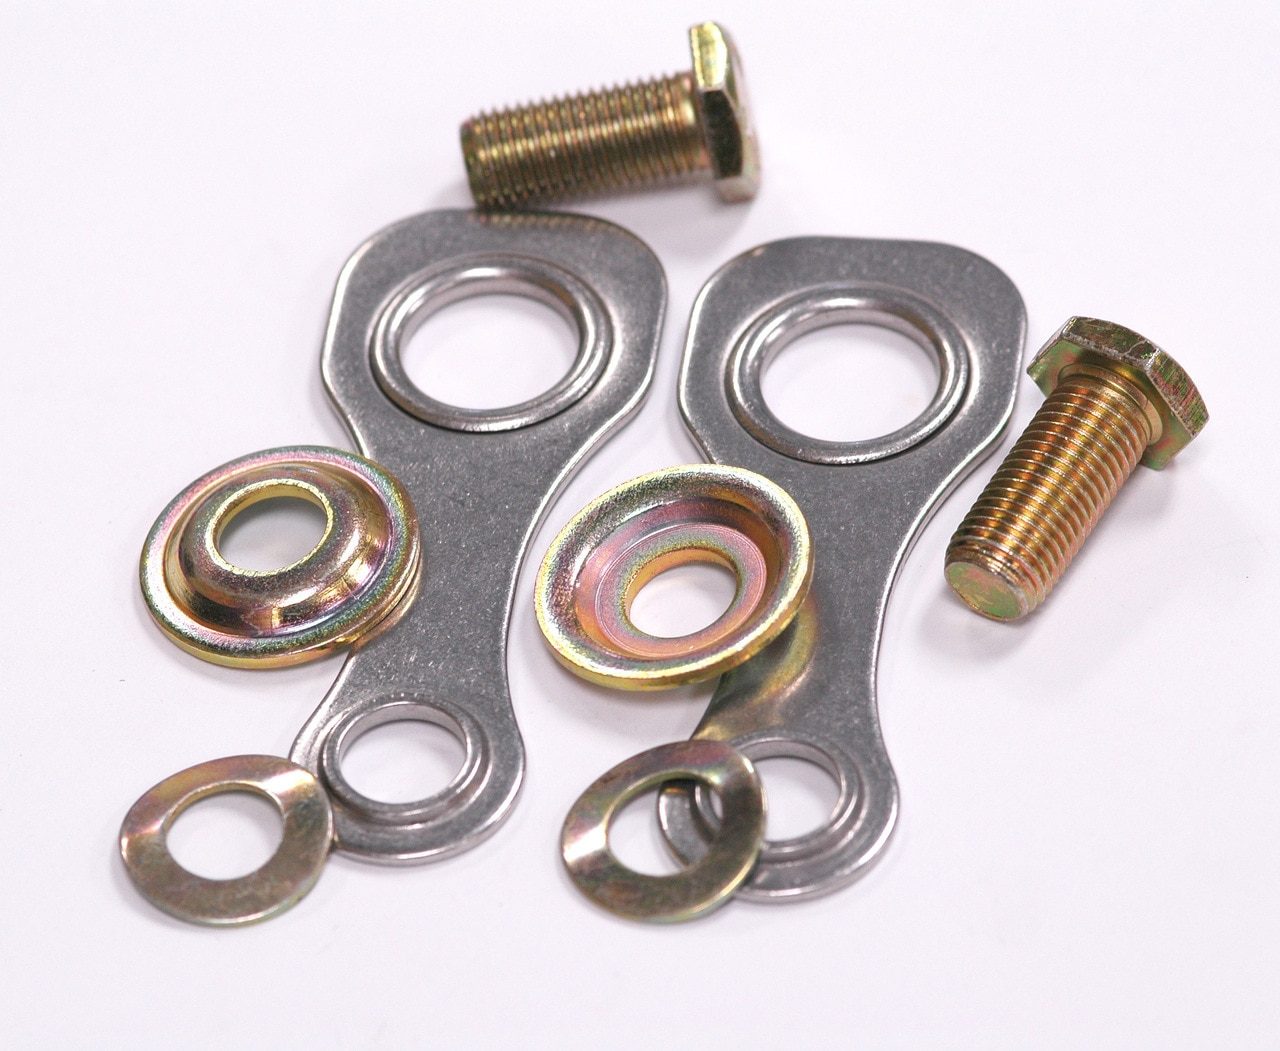 Schroth Bolt In End Fitting Kits